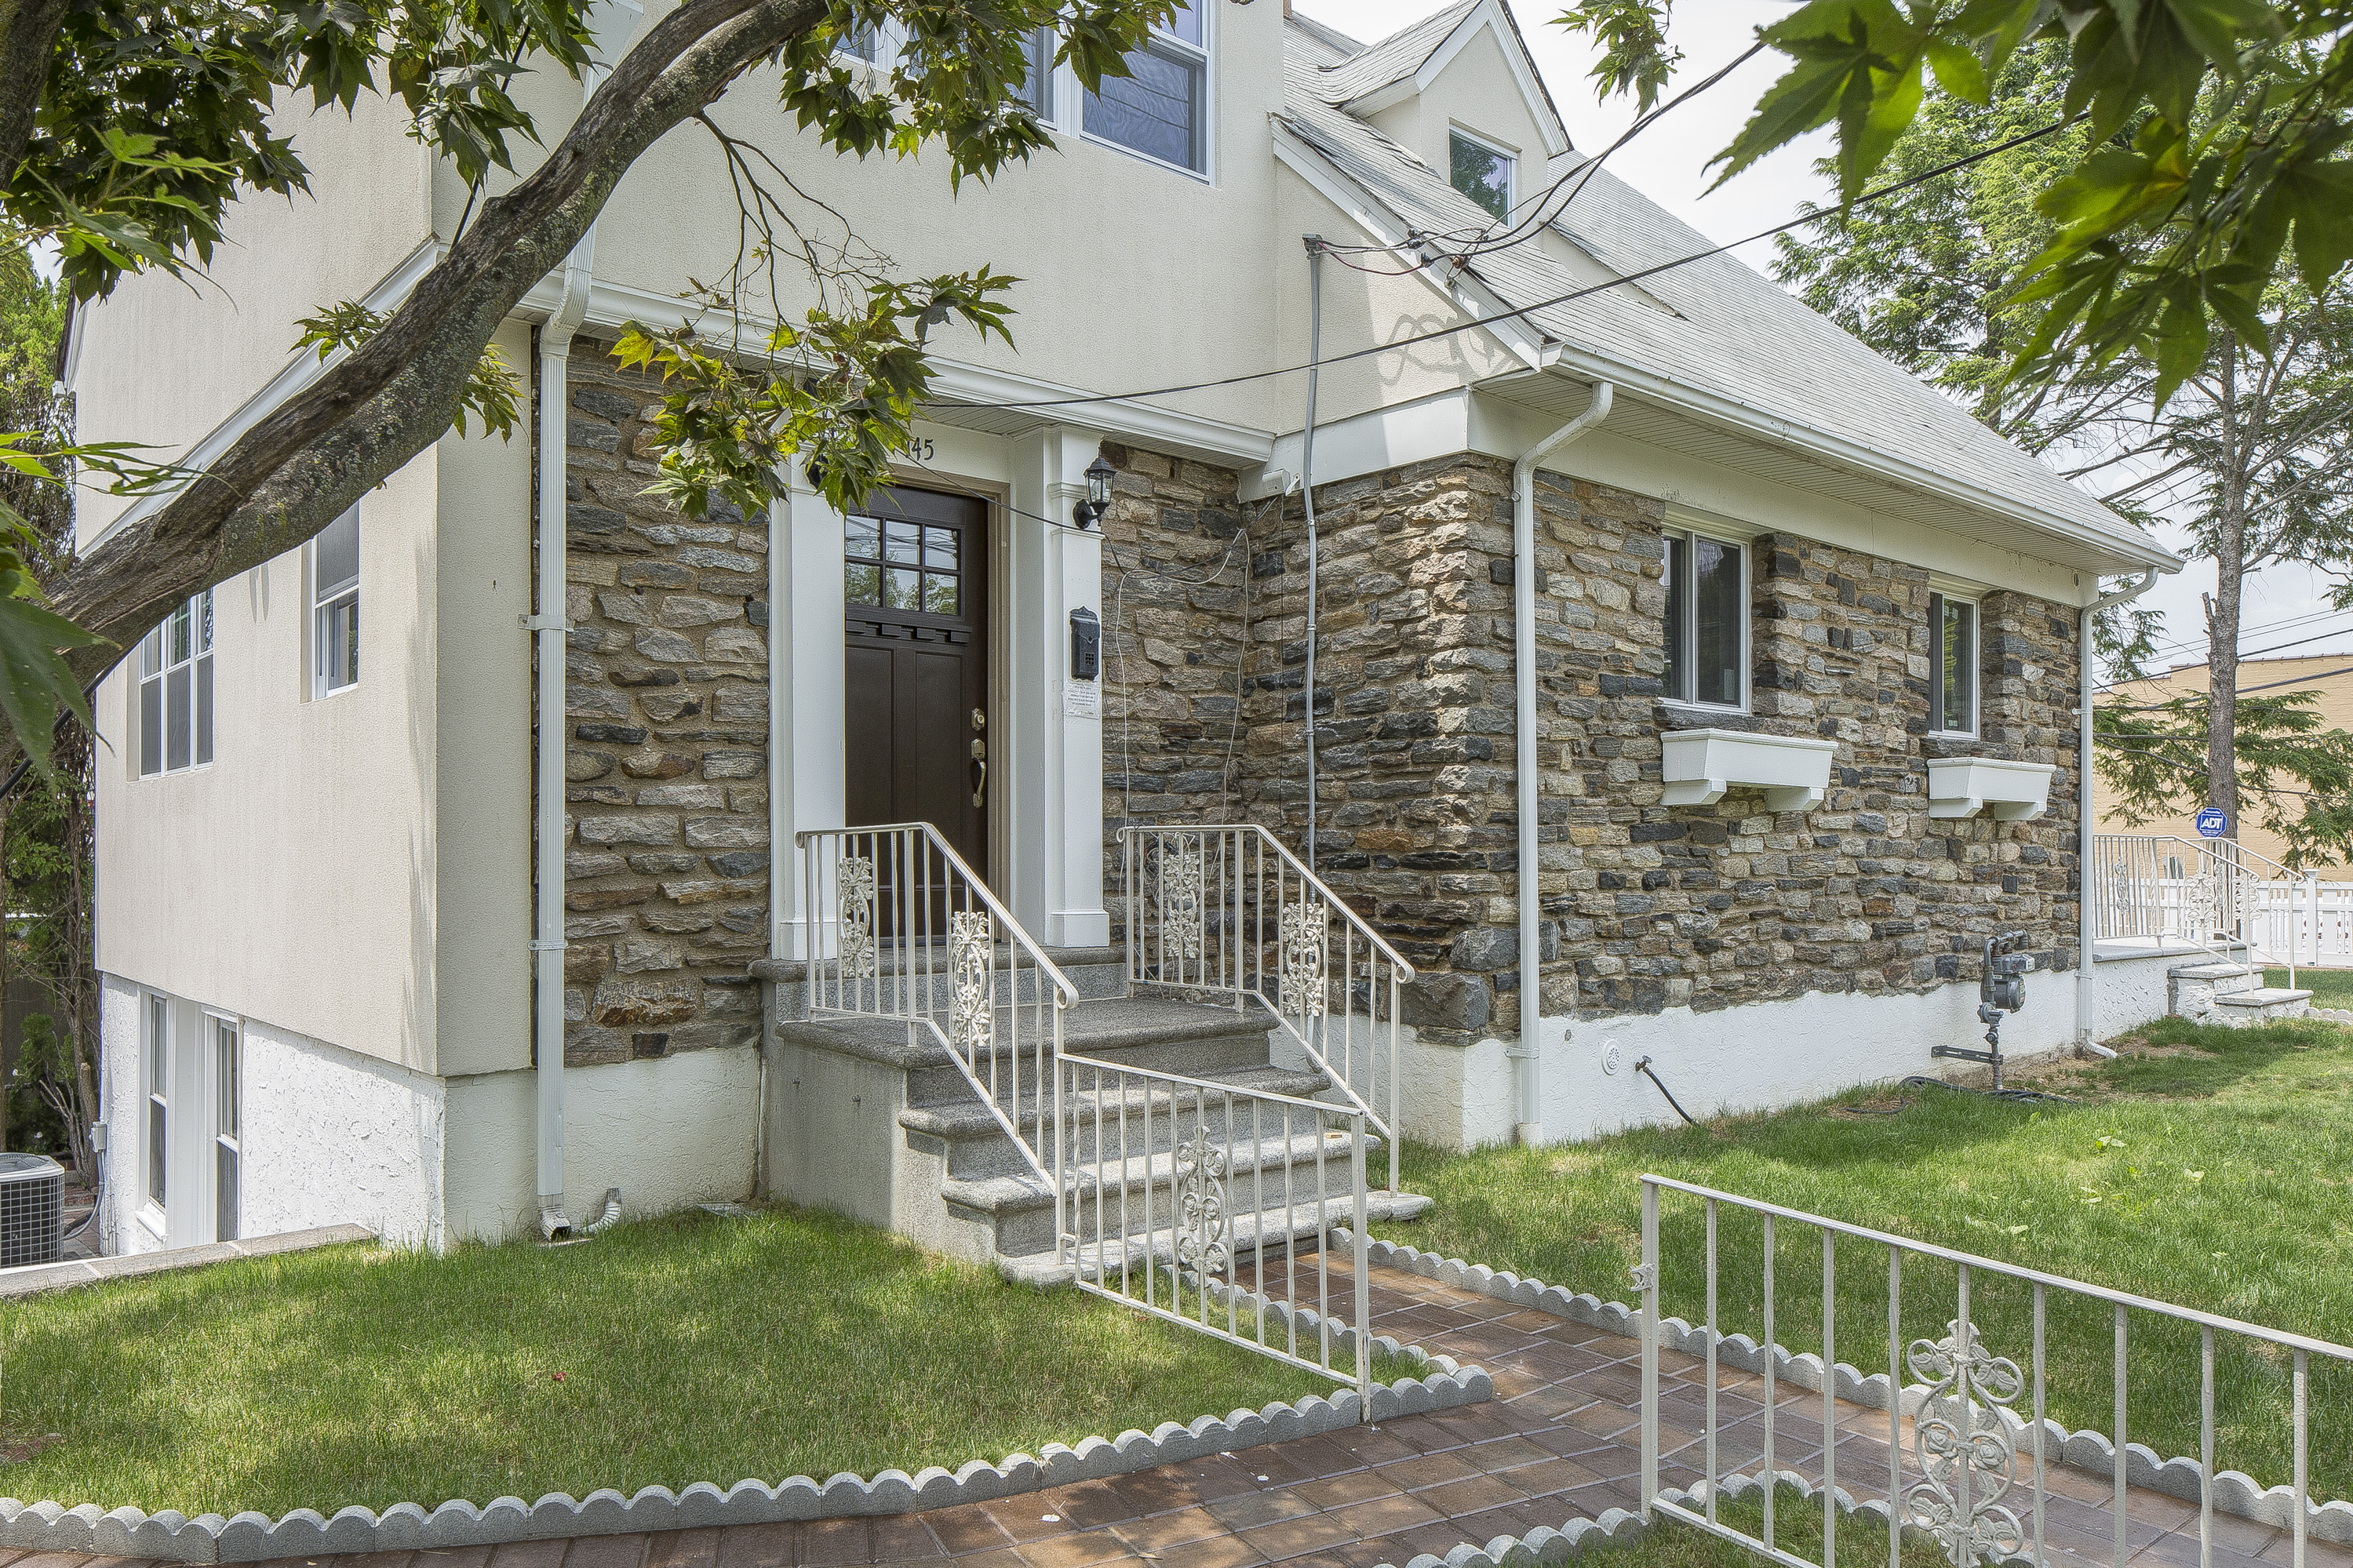 Single Family Home for Sale at Newly Renovated Cape 10 Delaware Road Yonkers, New York, 10710 United States